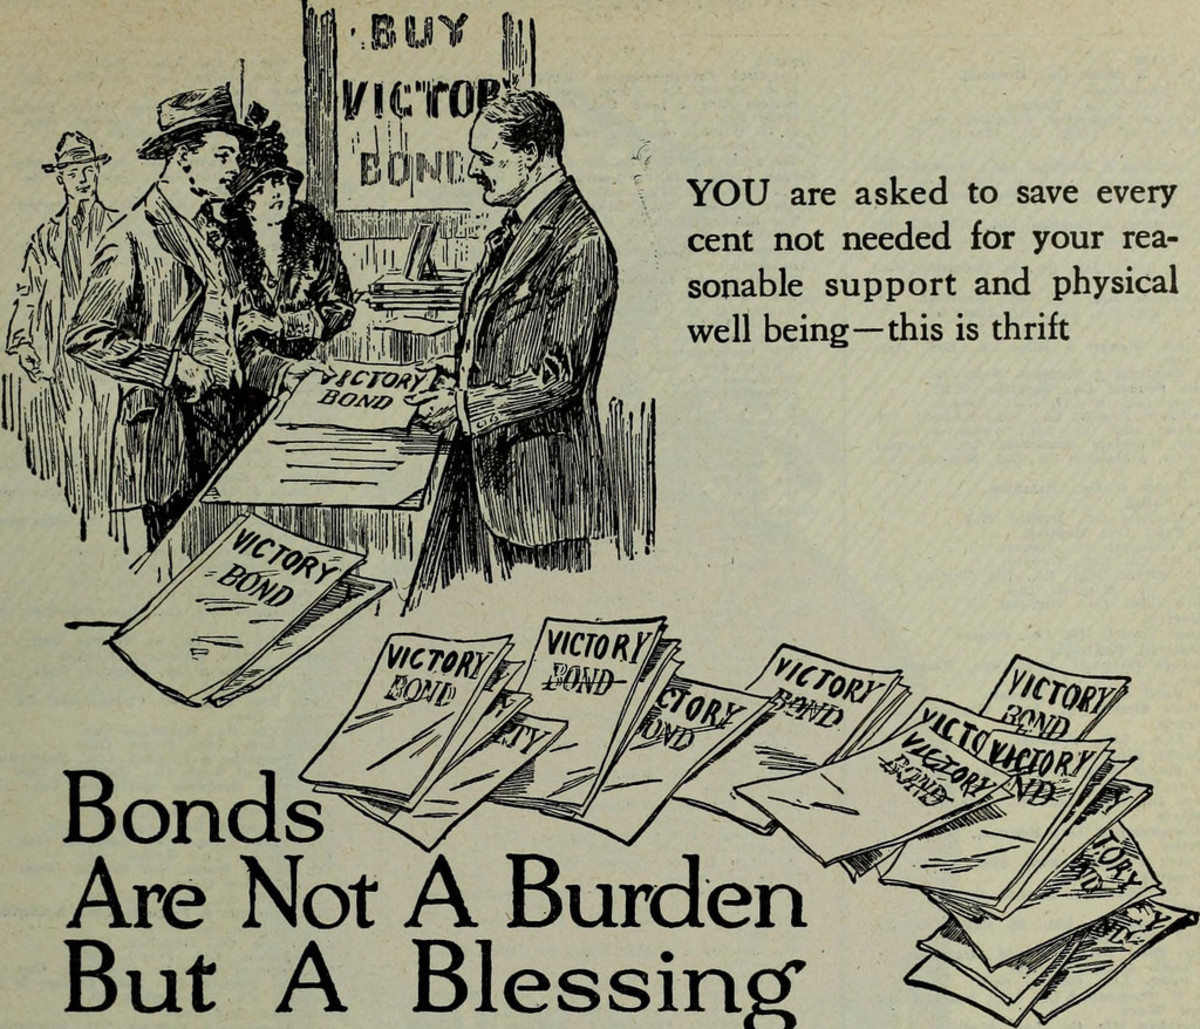 Learn about investing in bonds